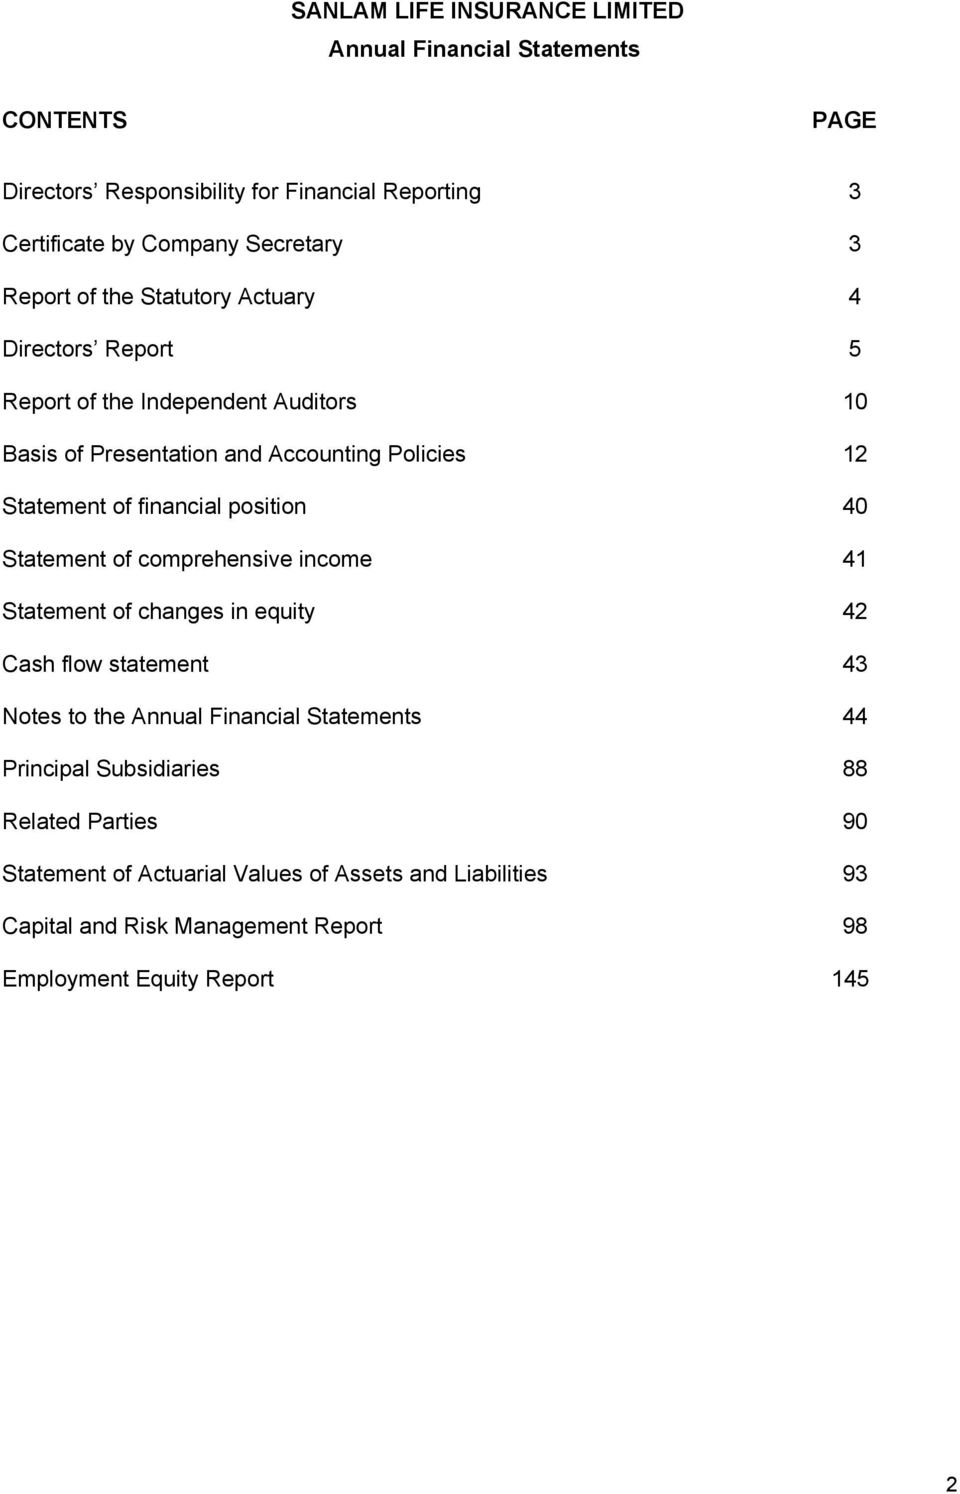 financial position 40 Statement of comprehensive income 41 Statement of changes in equity 42 Cash flow statement 43 Notes to the Annual Financial Statements 44